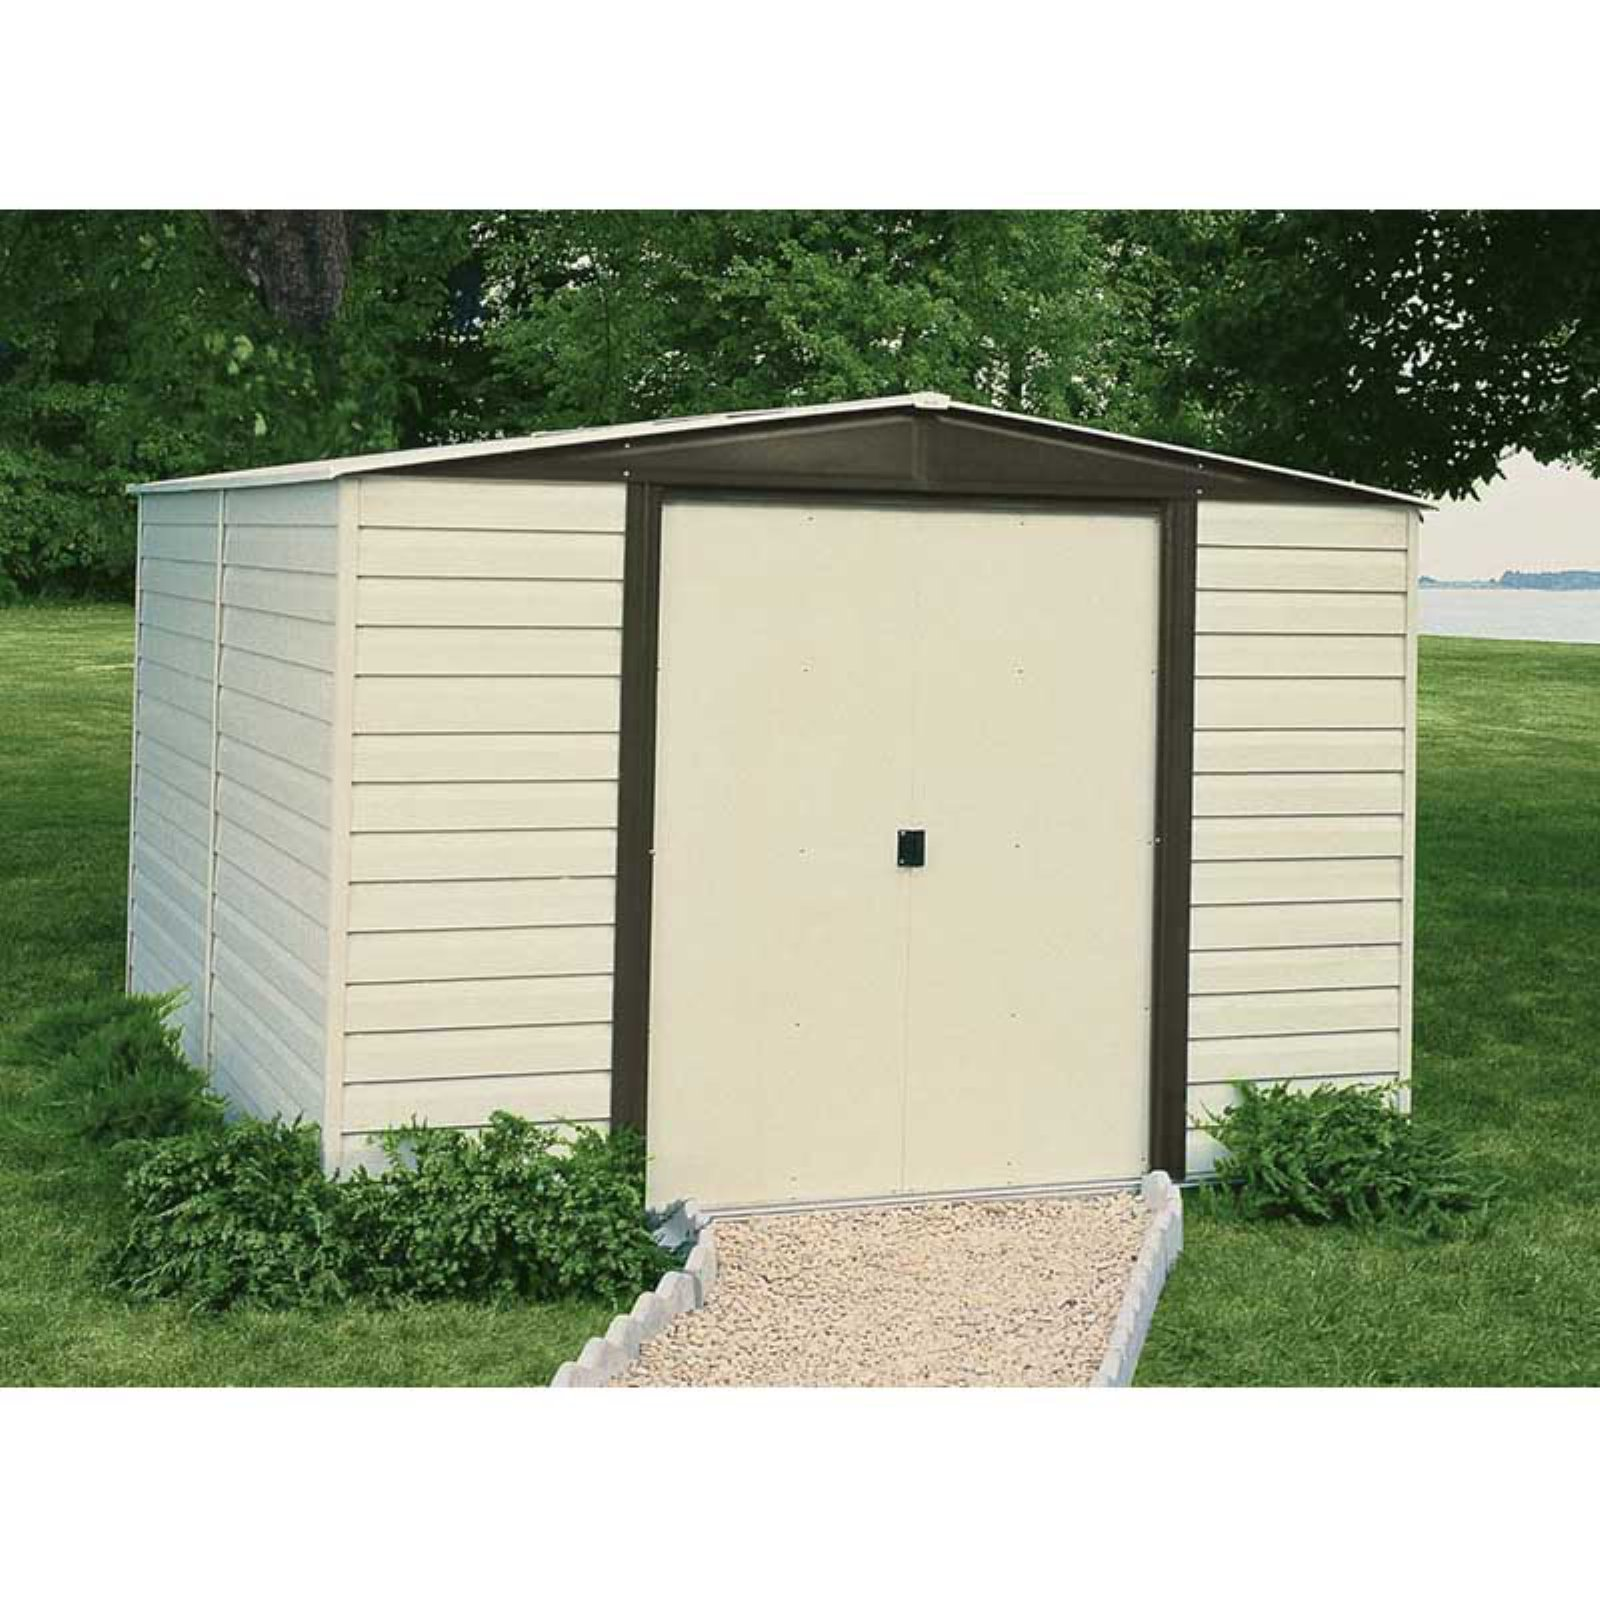 High Quality Vinyl Dallas 10 X 12 Ft. Steel Storage Shed Coffee/Almond